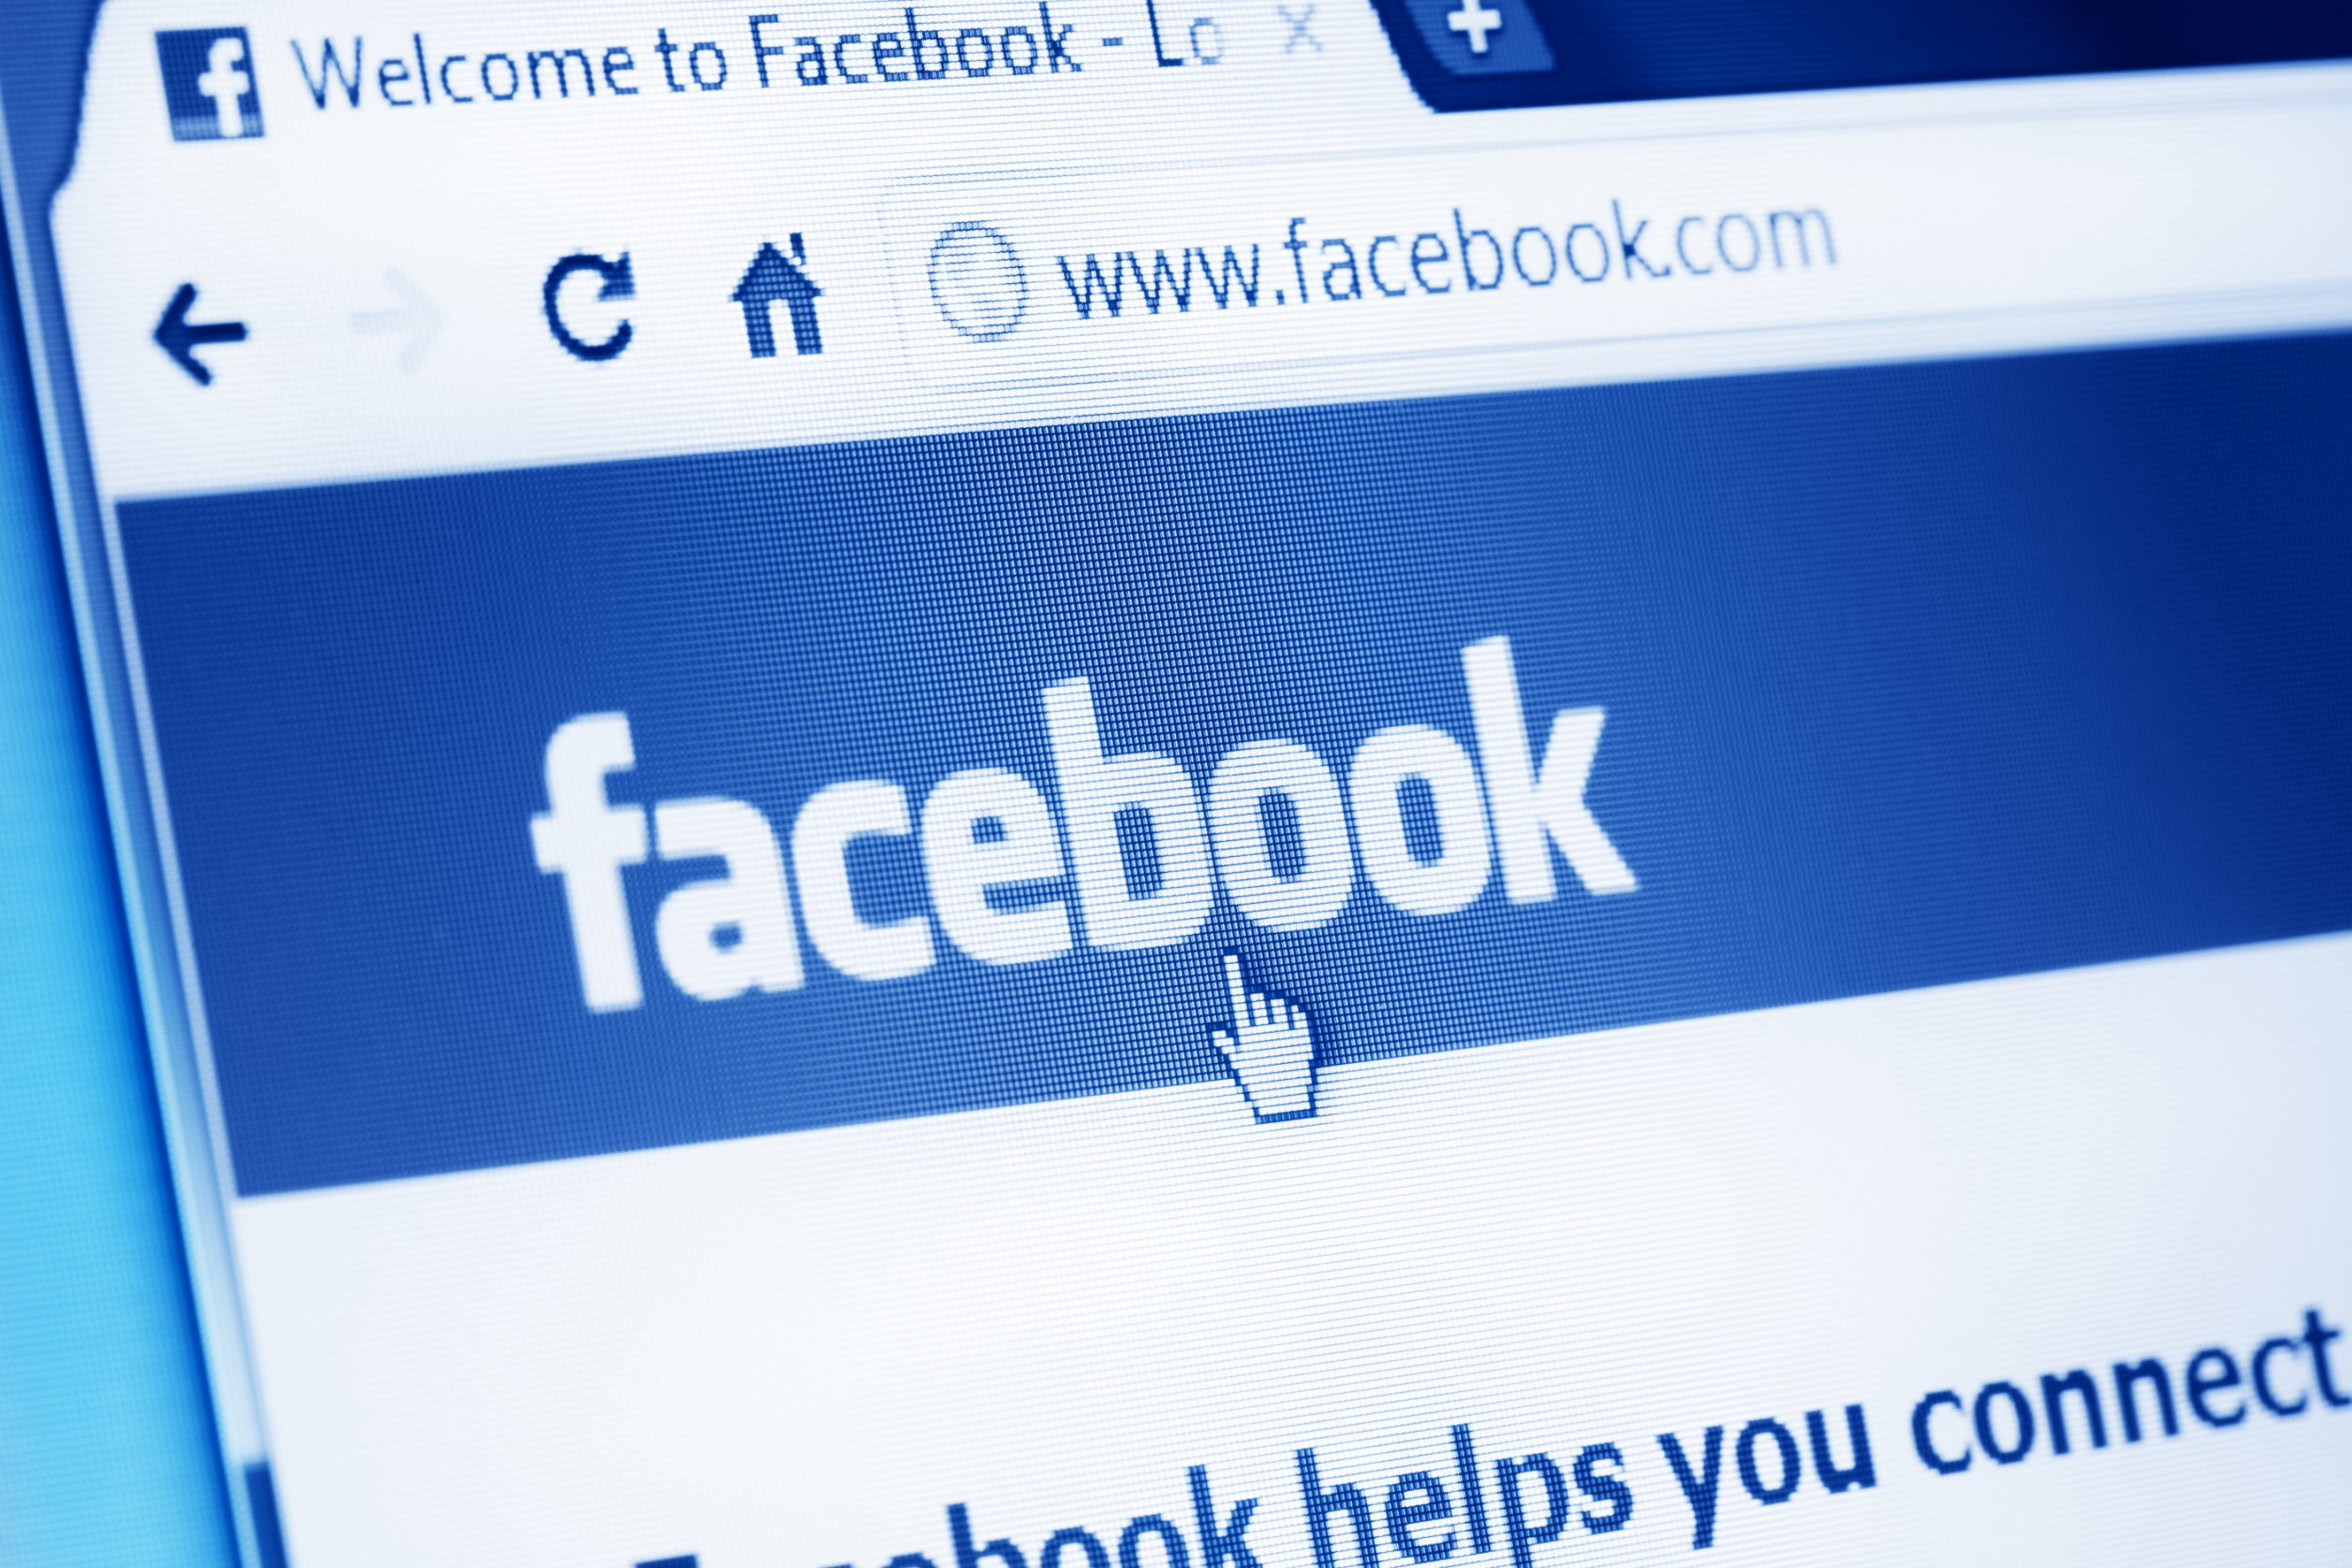 Time waster called police because Facebook went down for him Krasnoyarsk, Russia - June 13, 2011: Facebook main webpage on Google Chrome browser on LCD screen